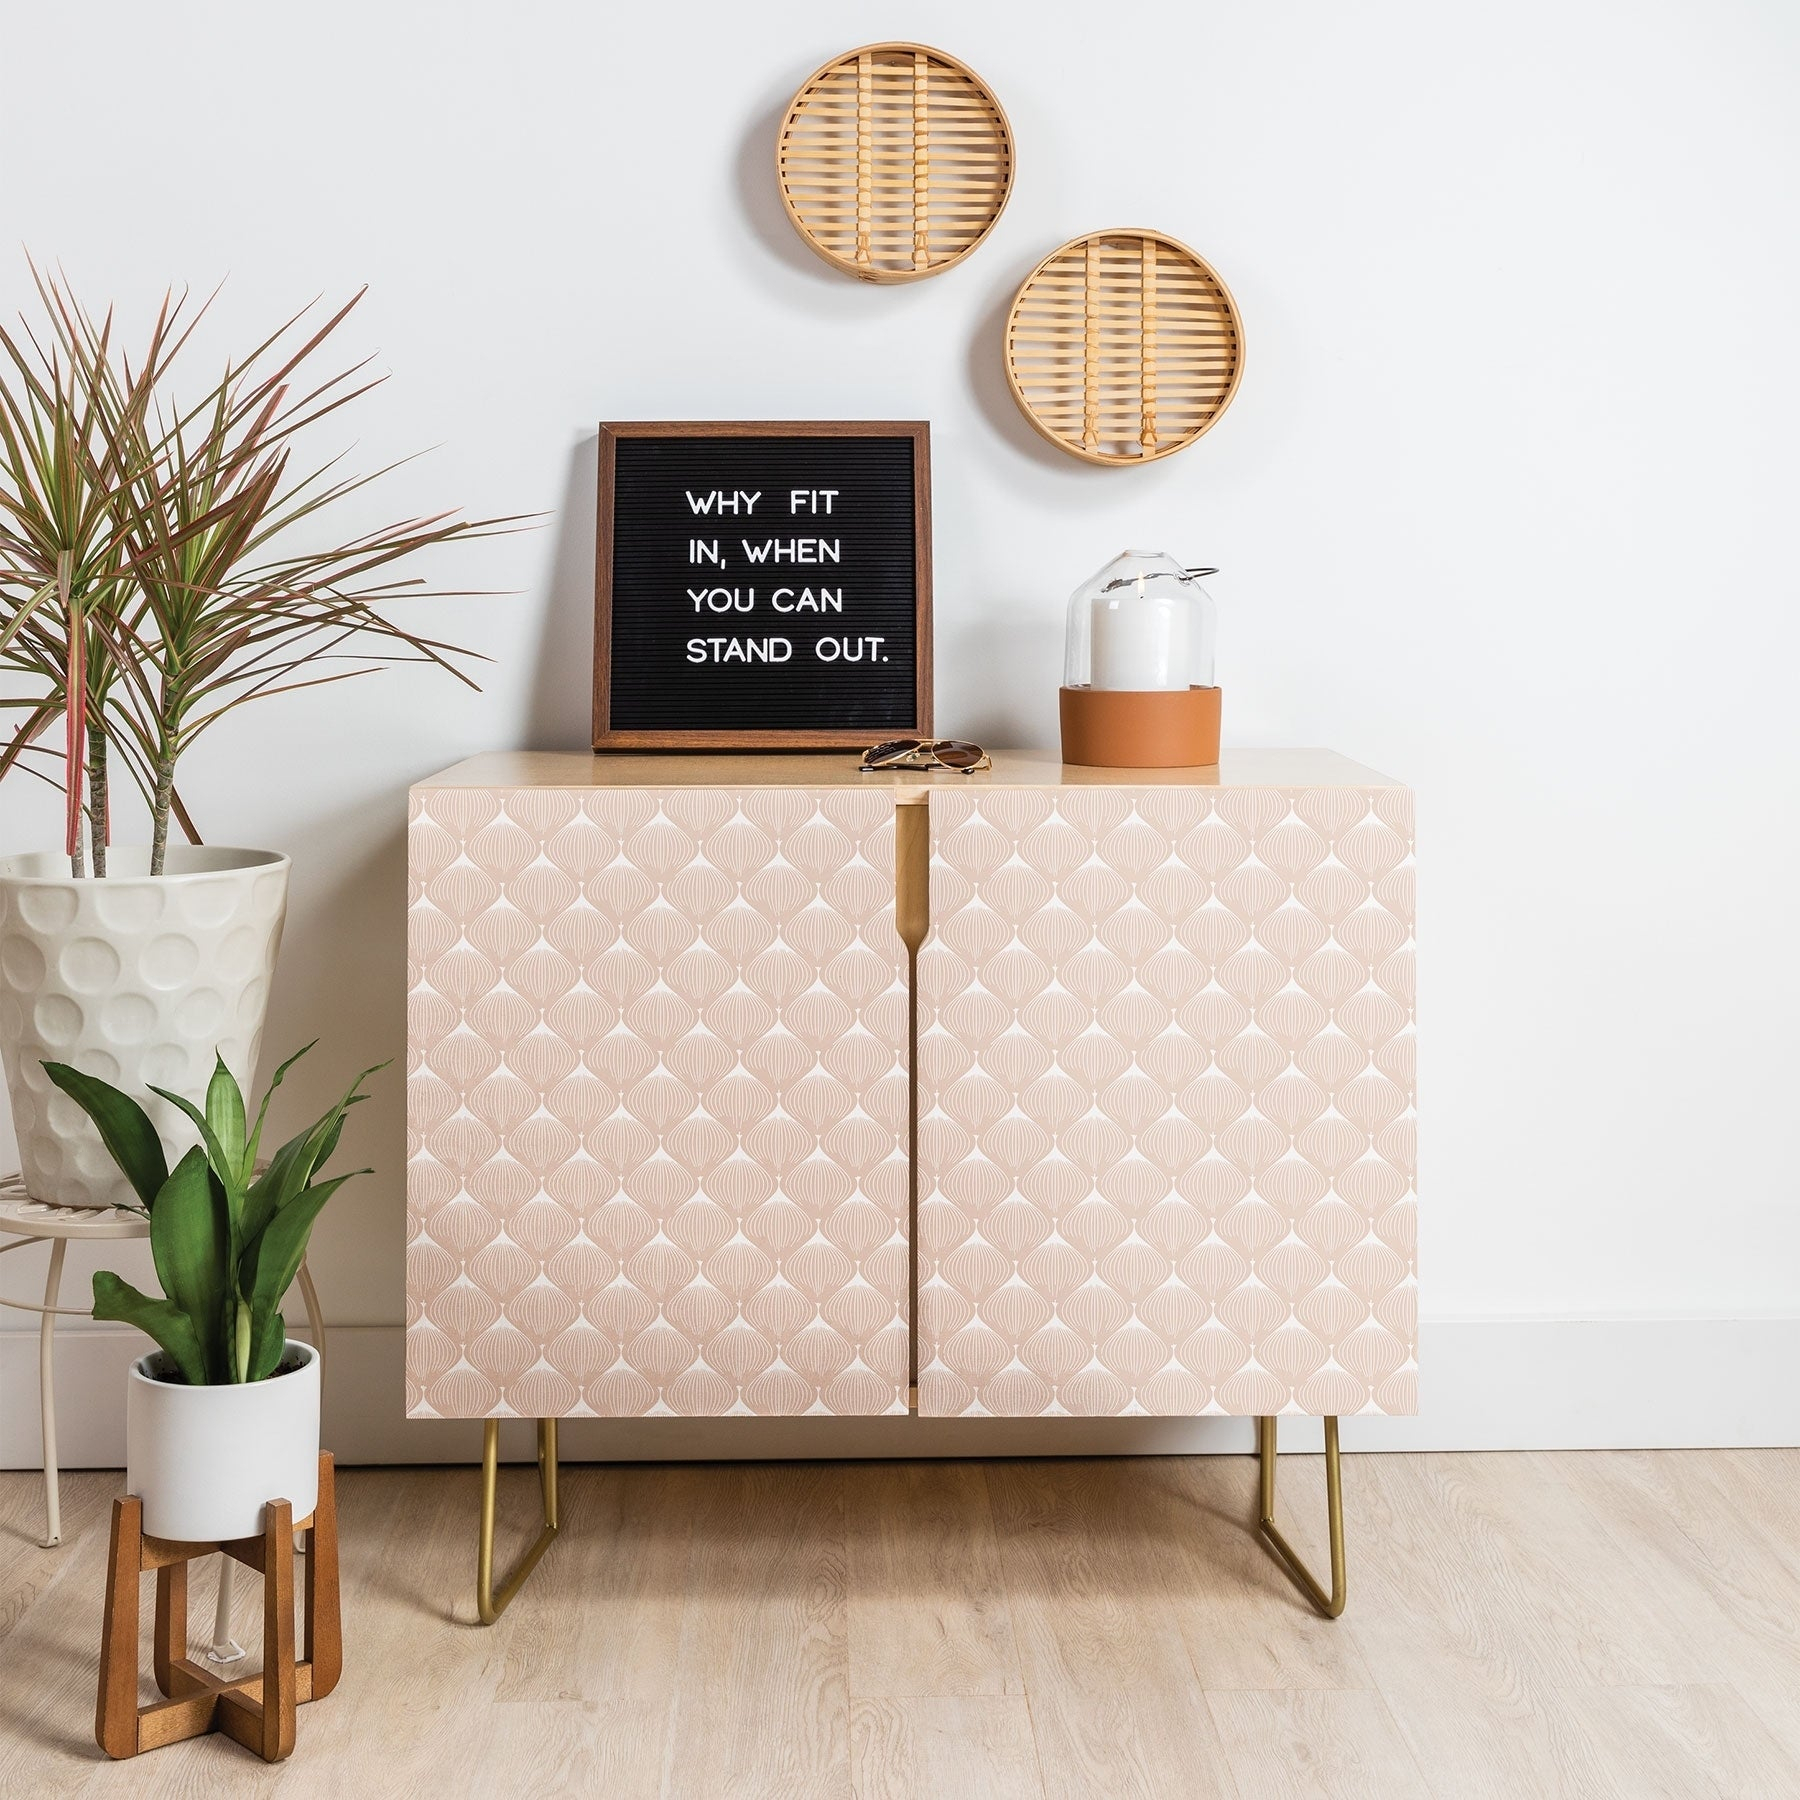 Deny Designs Pale Pink Bulbs Credenza (Birch Or Walnut, 2 Leg Options) Throughout Pale Pink Bulbs Credenzas (Gallery 1 of 30)